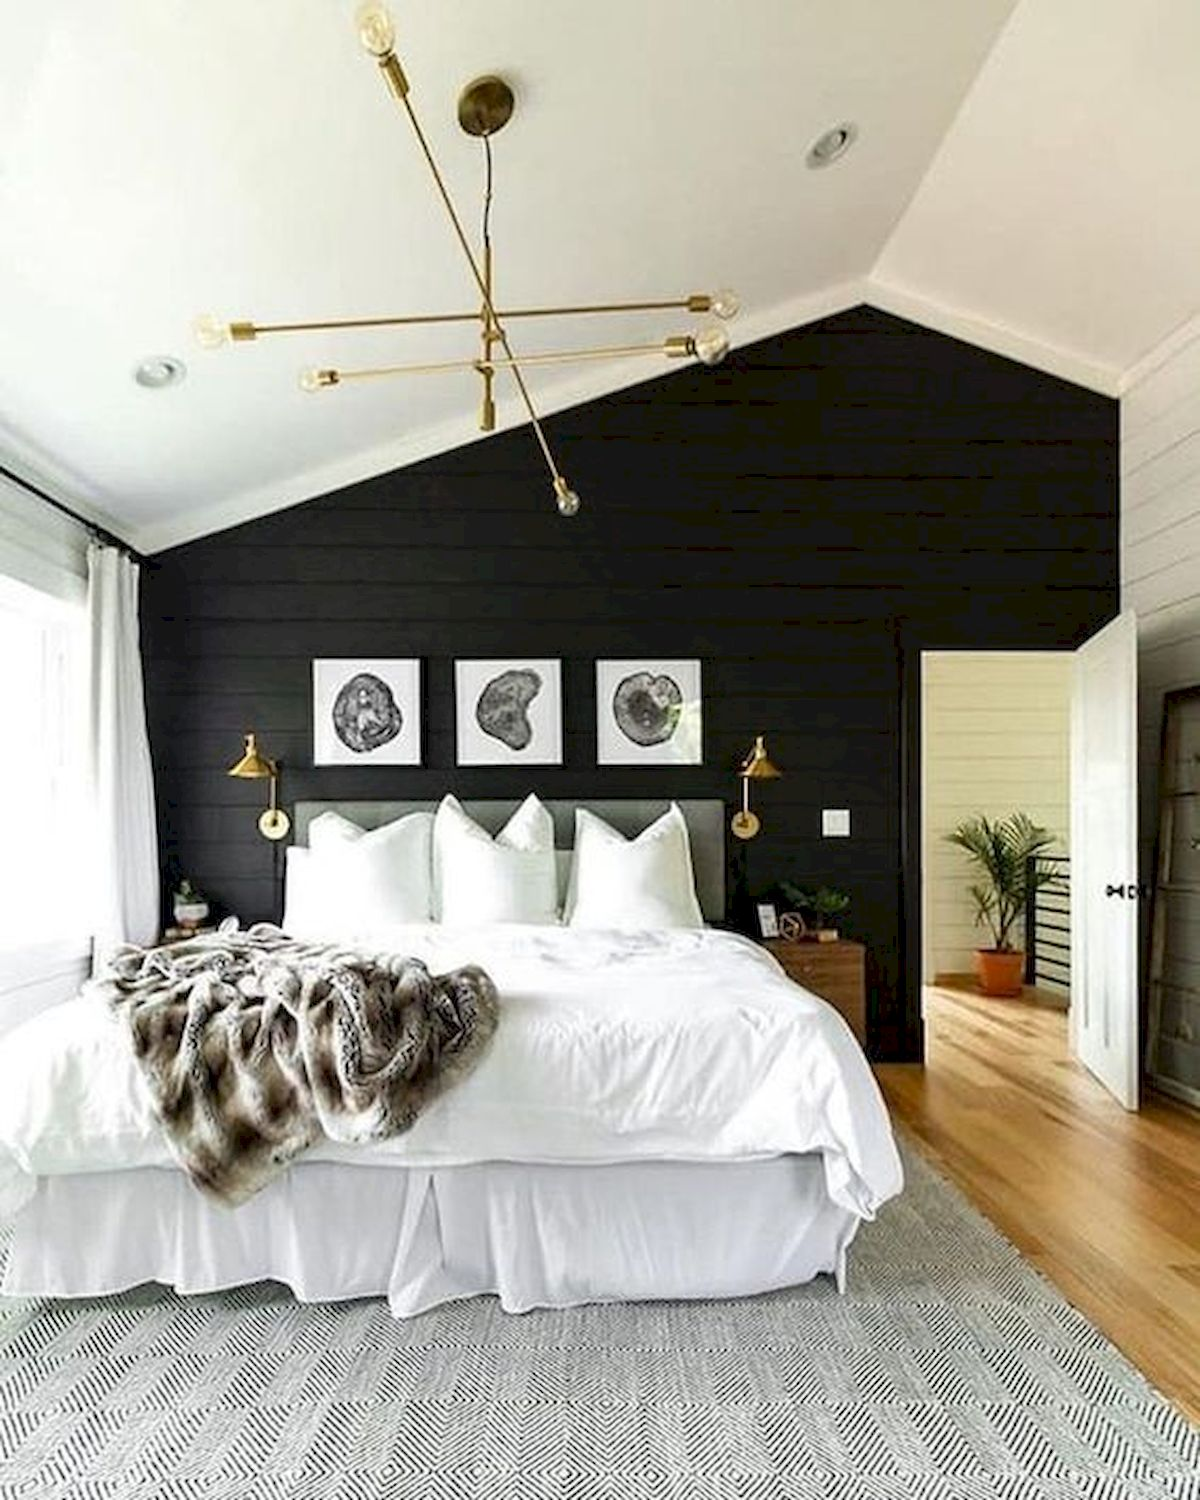 44 Awesome White Master Bedroom Design and Decor Ideas For Any Home Design (6)